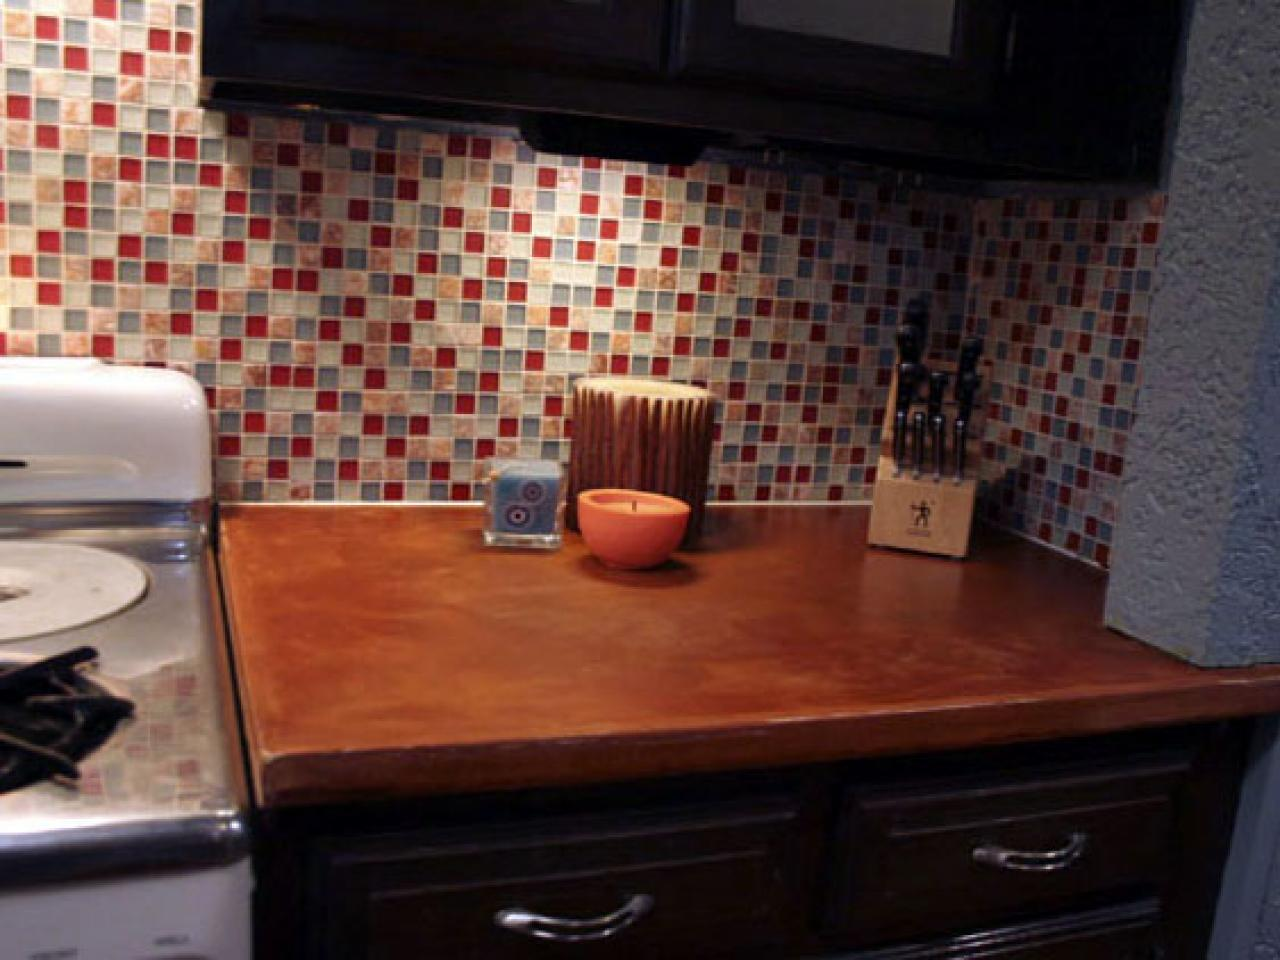 Installing a tile backsplash in your kitchen hgtv How to put tile on wall in the kitchen